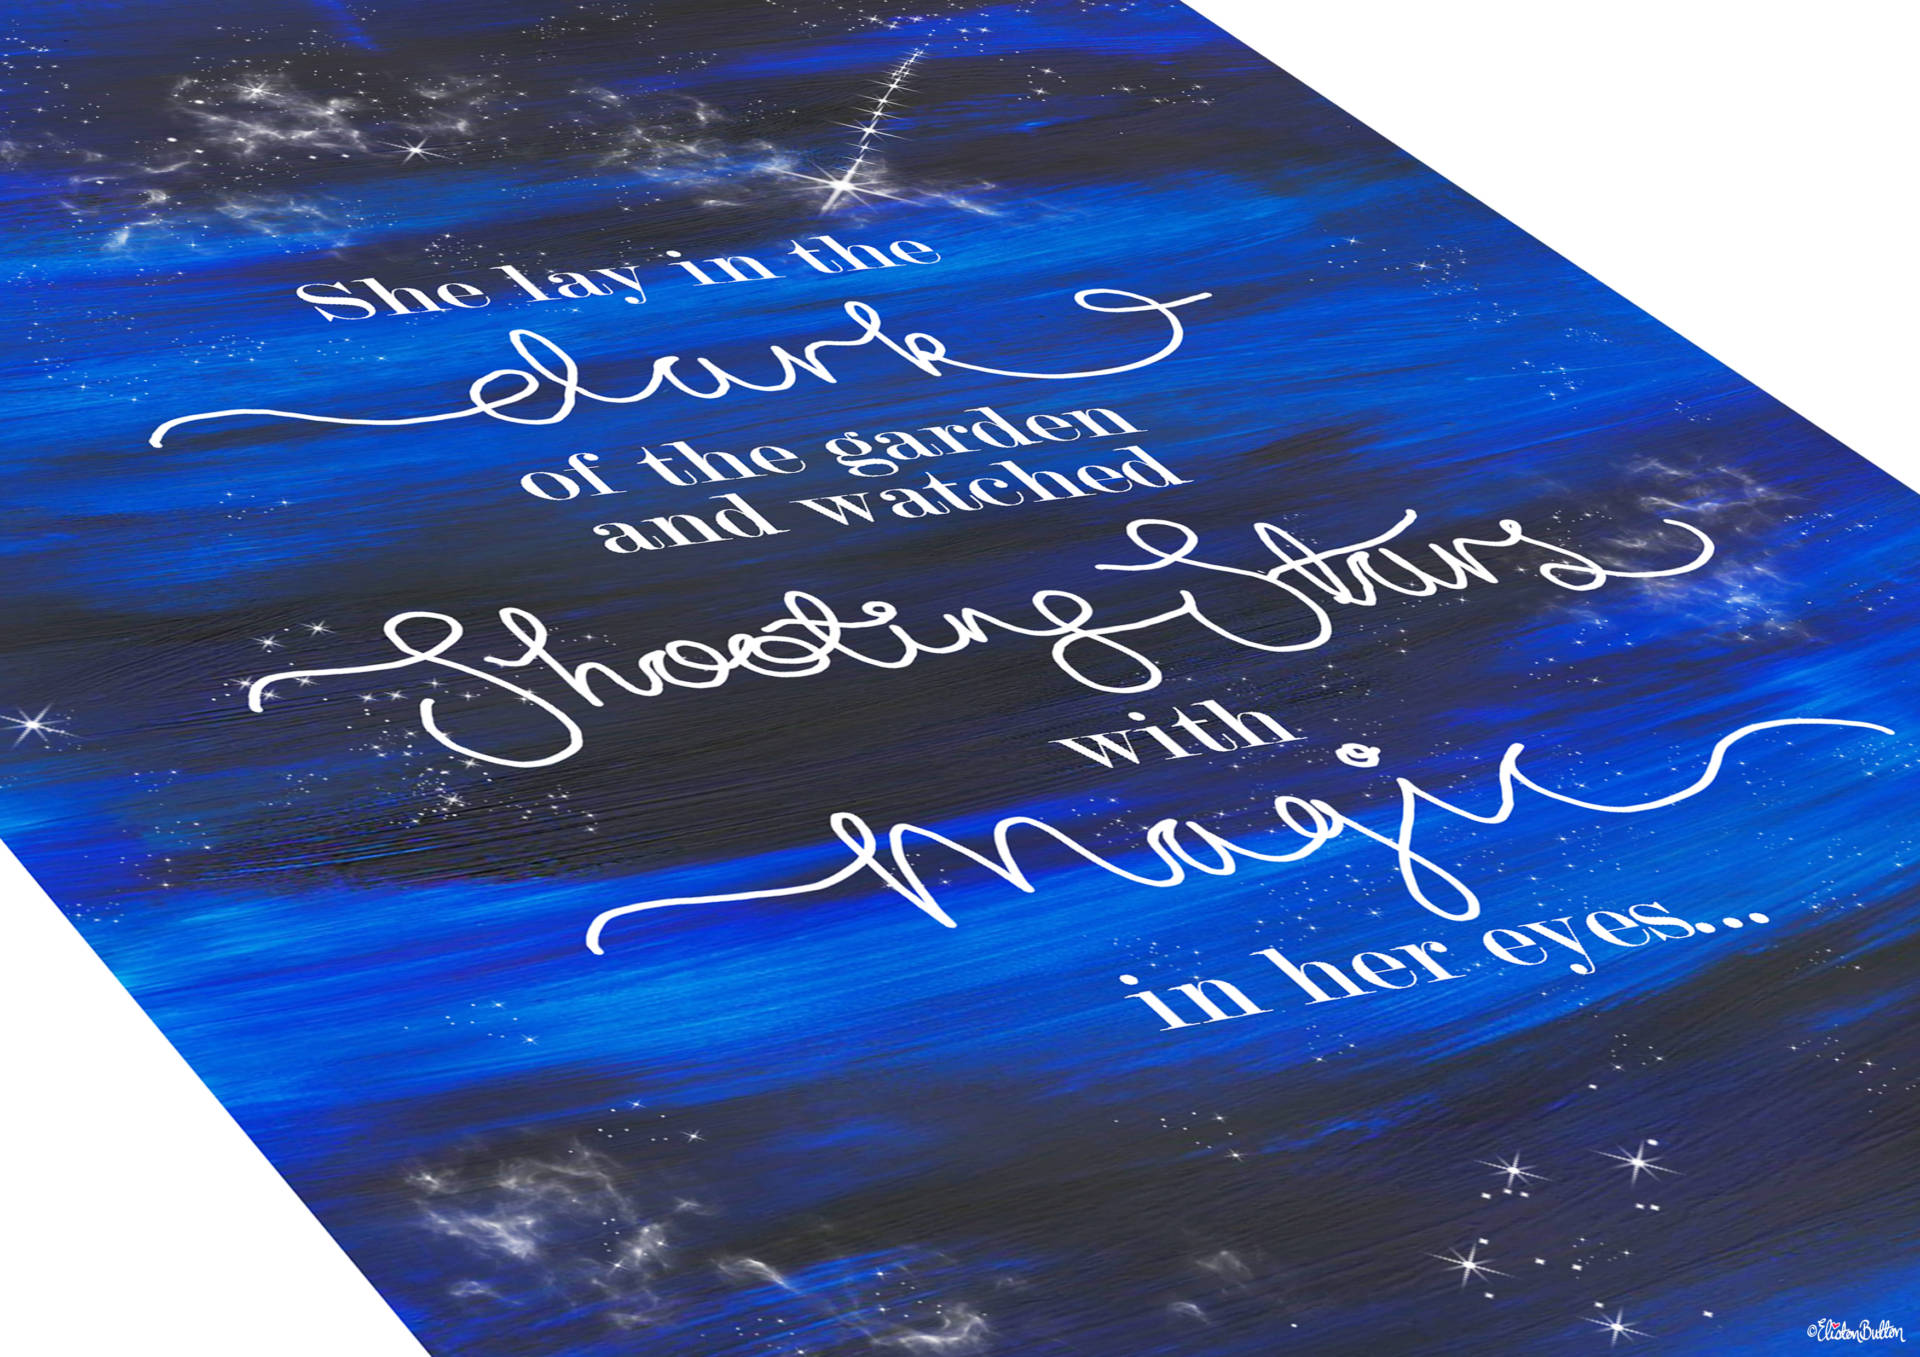 Shooting Star Quote Print with Painted Night Sky Background by Eliston Button - Texture Close Up - Create 30 - No. 23 - Shooting Star Quote Print at www.elistonbutton.com - Eliston Button - That Crafty Kid – Art, Design, Craft & Adventure.